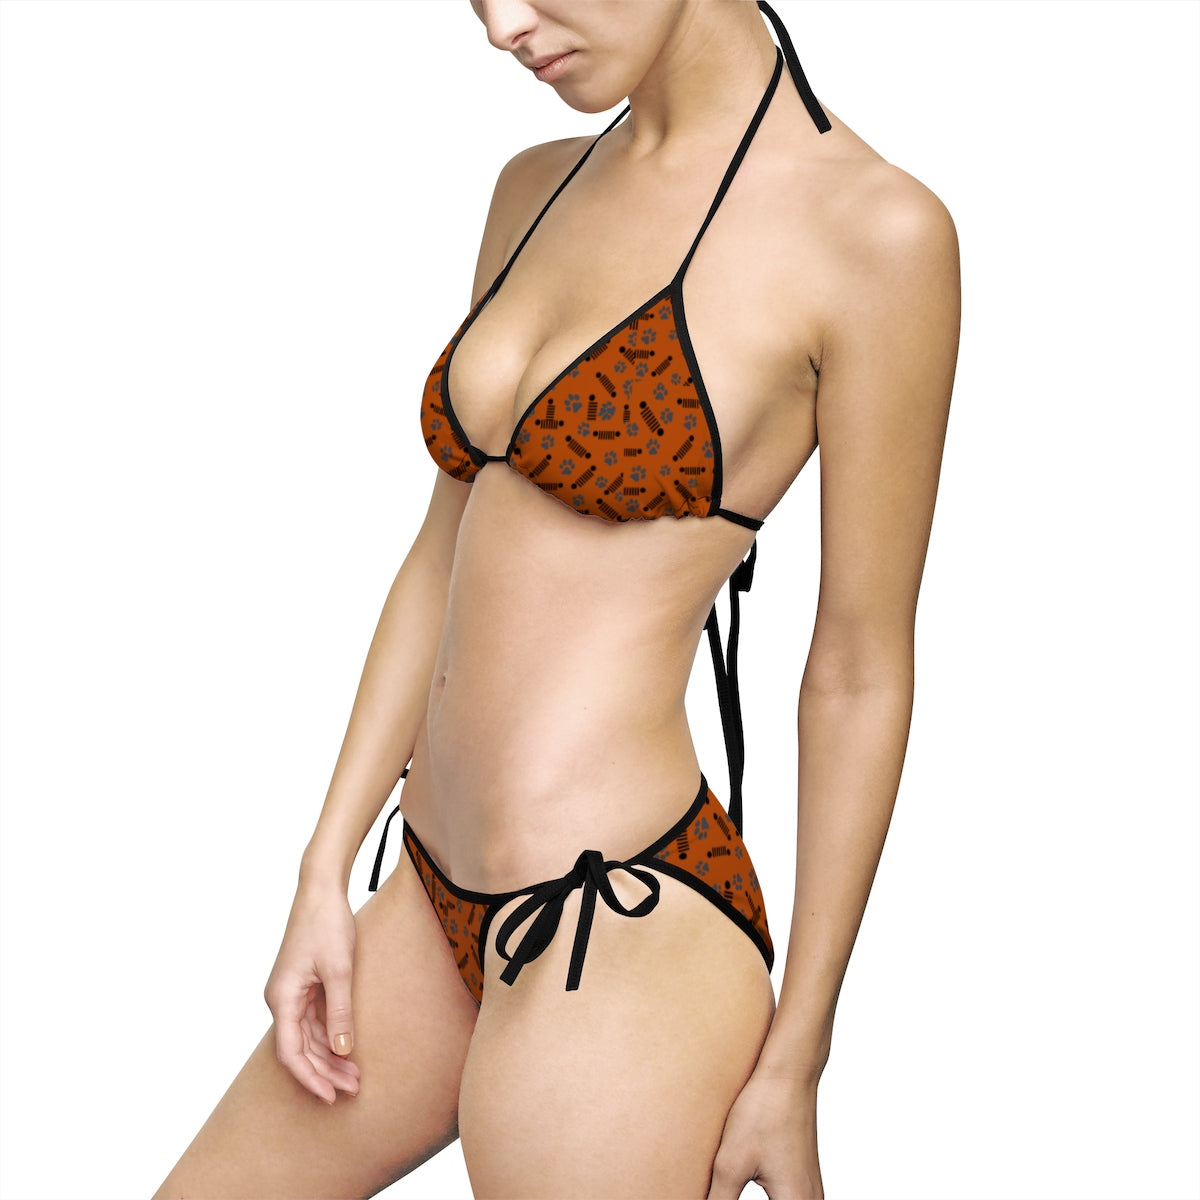 Copper jeep Women's Bikini Swimsuit